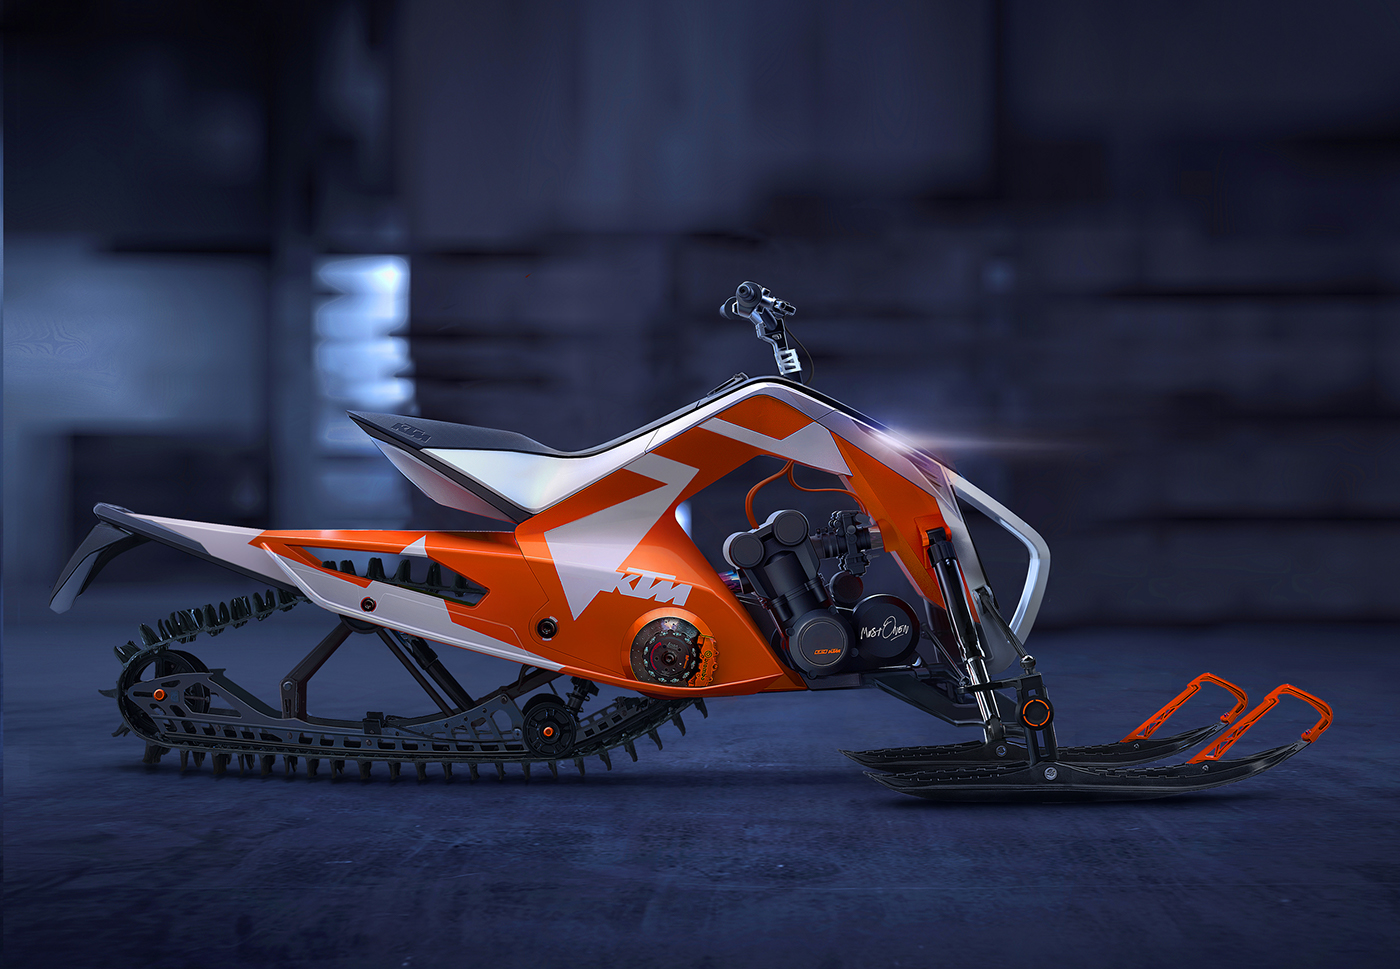 Ktm Quad Snowmobile